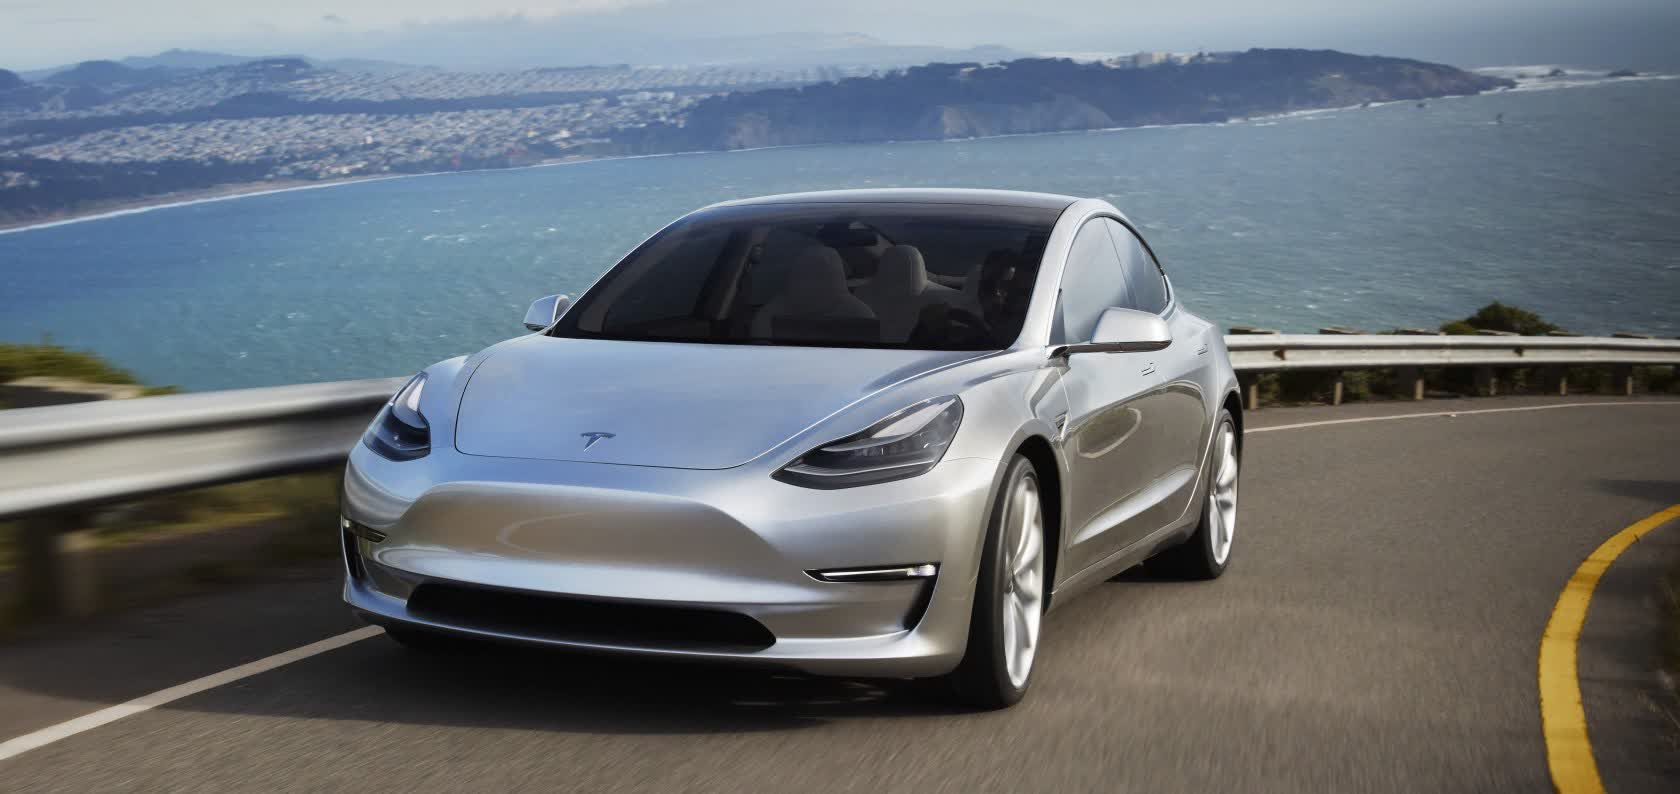 Tesla refreshes the Model 3 with improved range, a heated steering wheel, and more